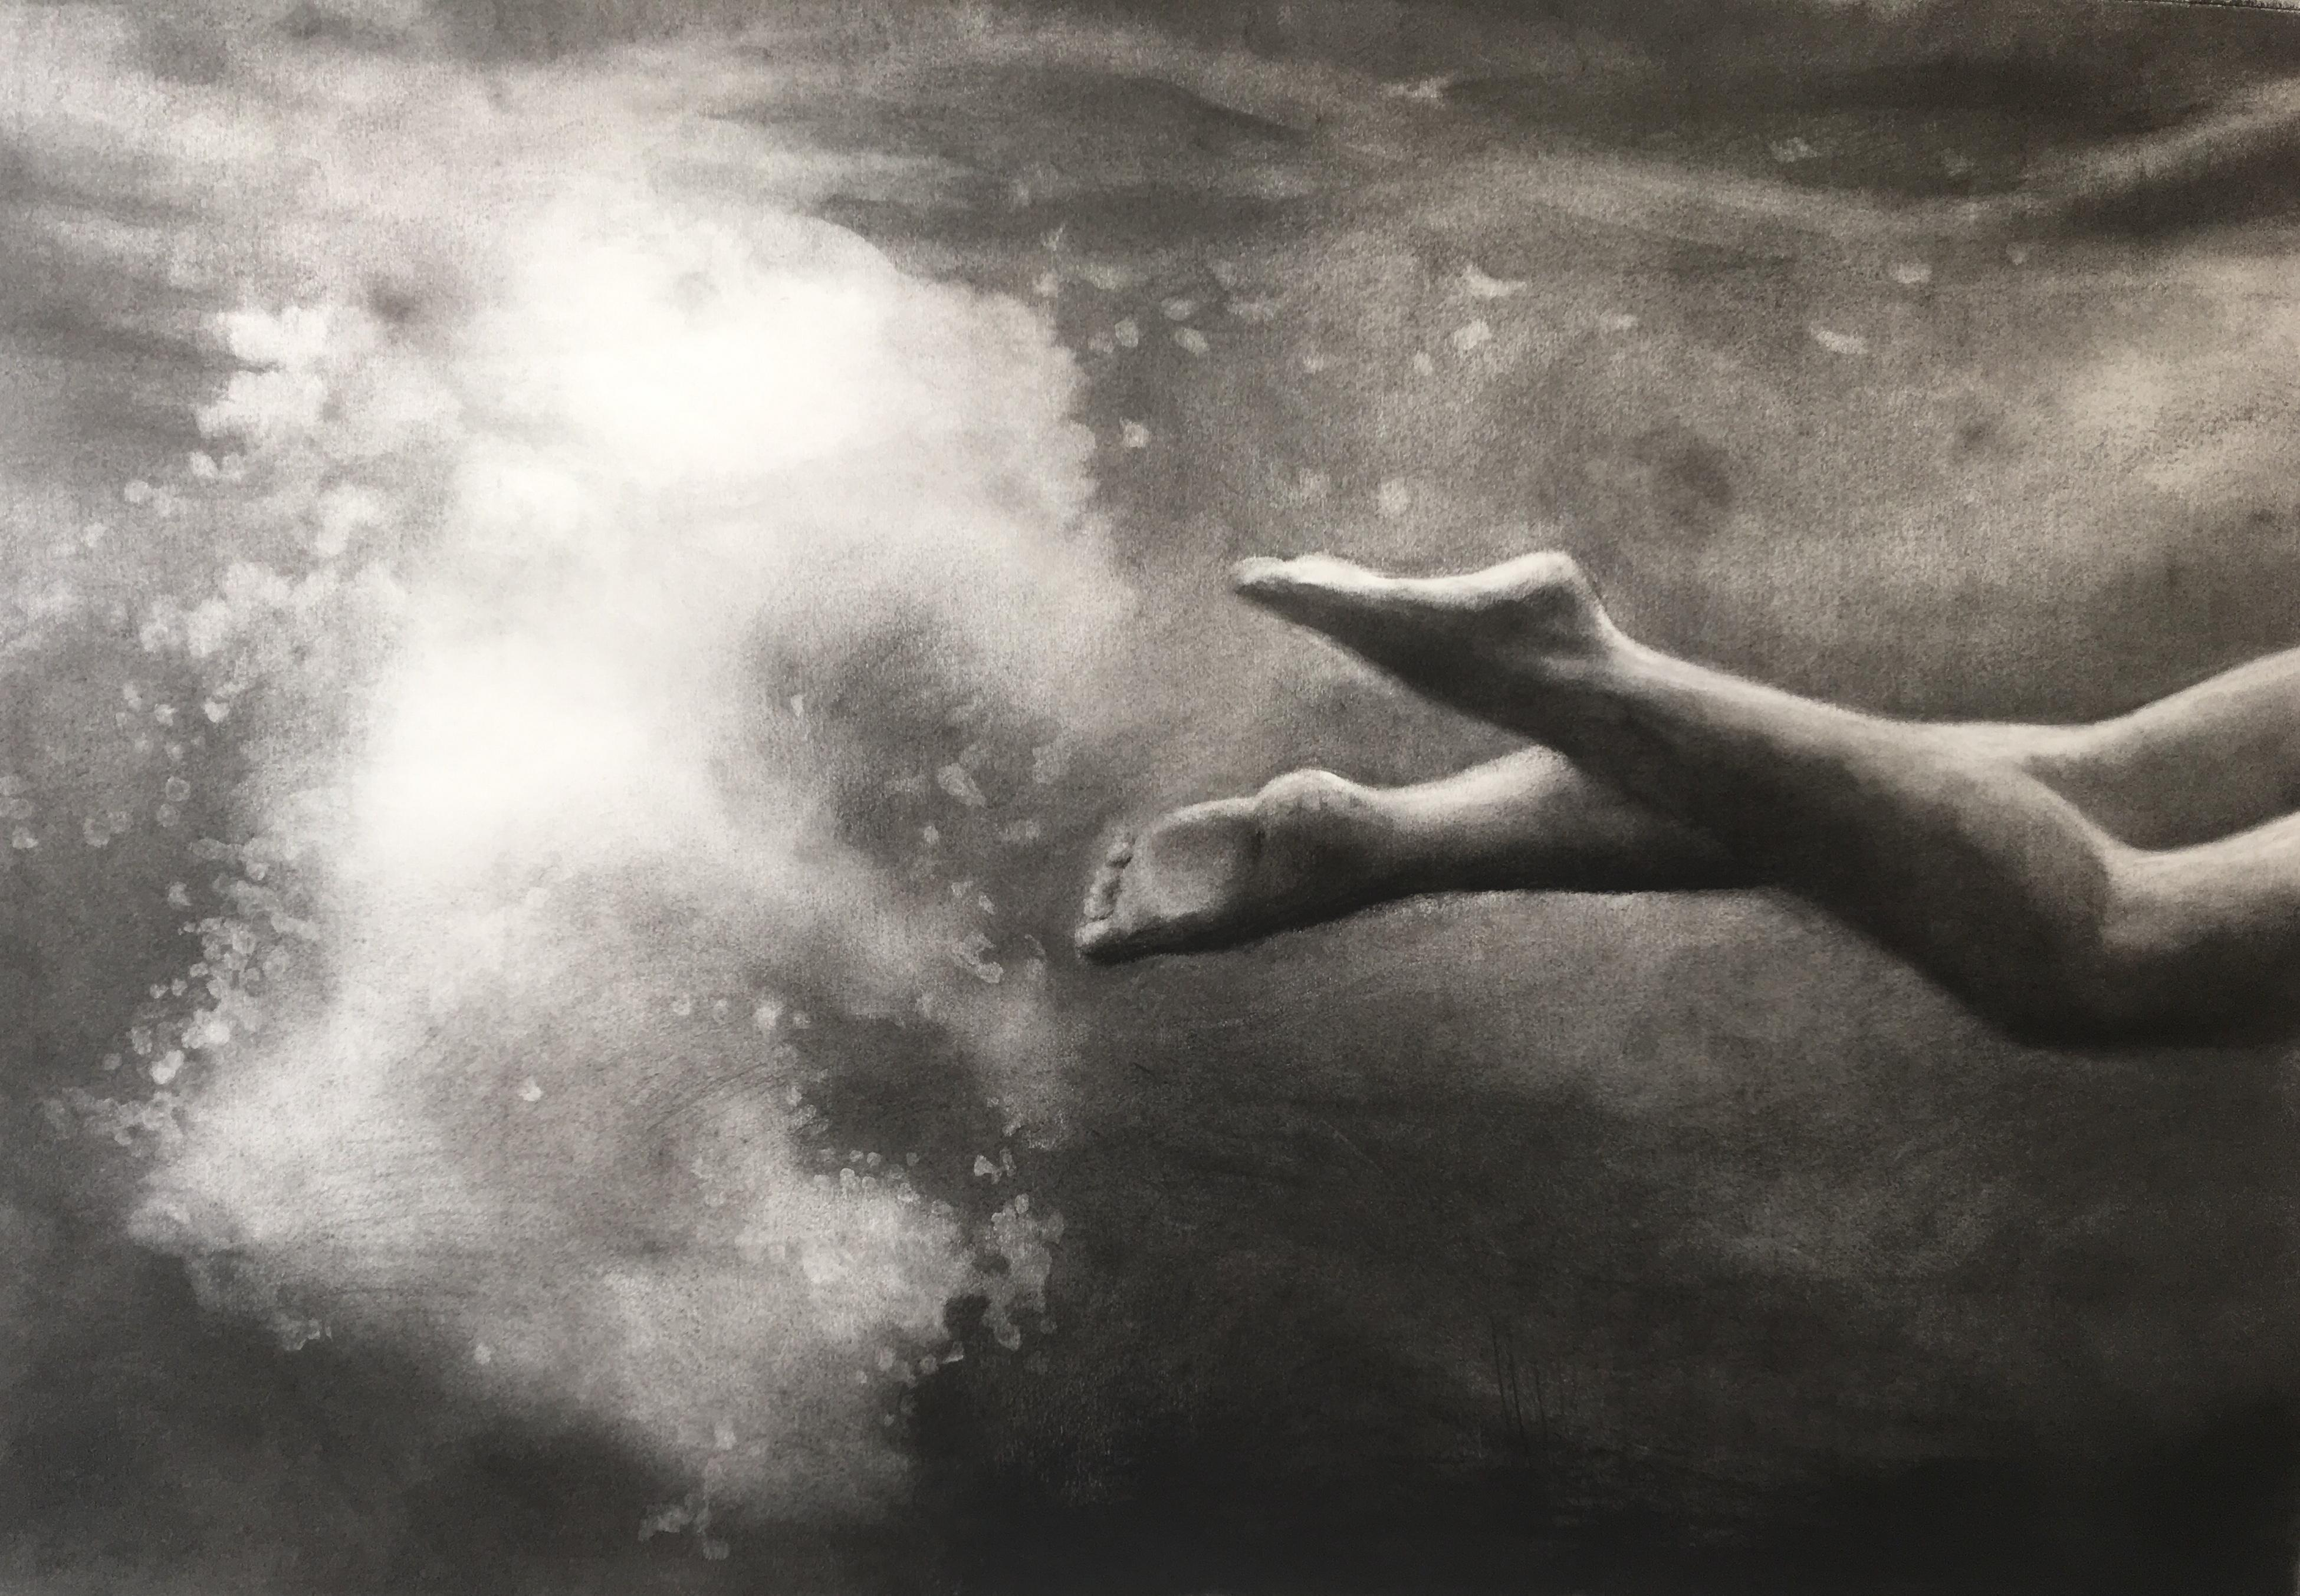 Trailblazer by Patsy McArthur, charcoal drawing, underwater diver and bubbles